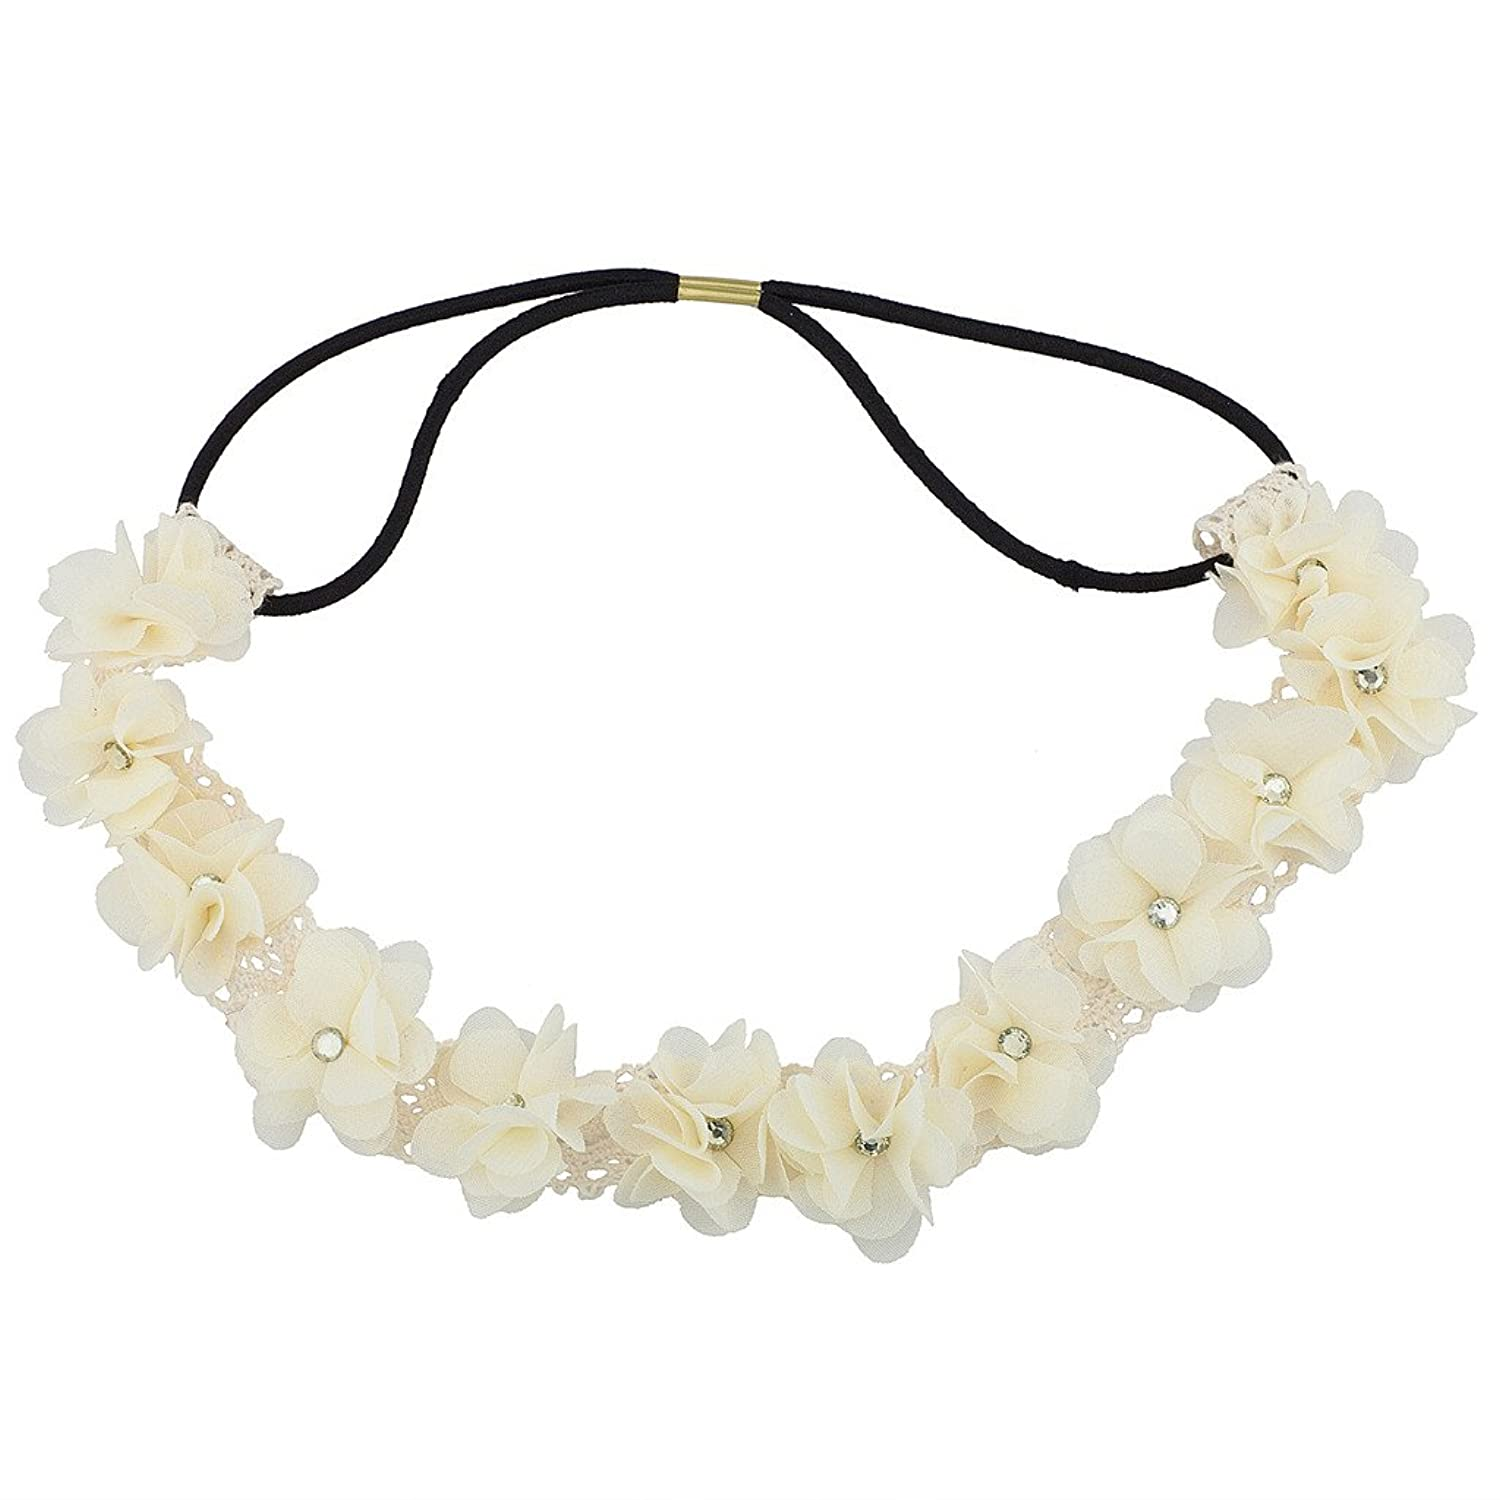 Lux Accessories White Floral Flower Crystal Lace Stretch Headband